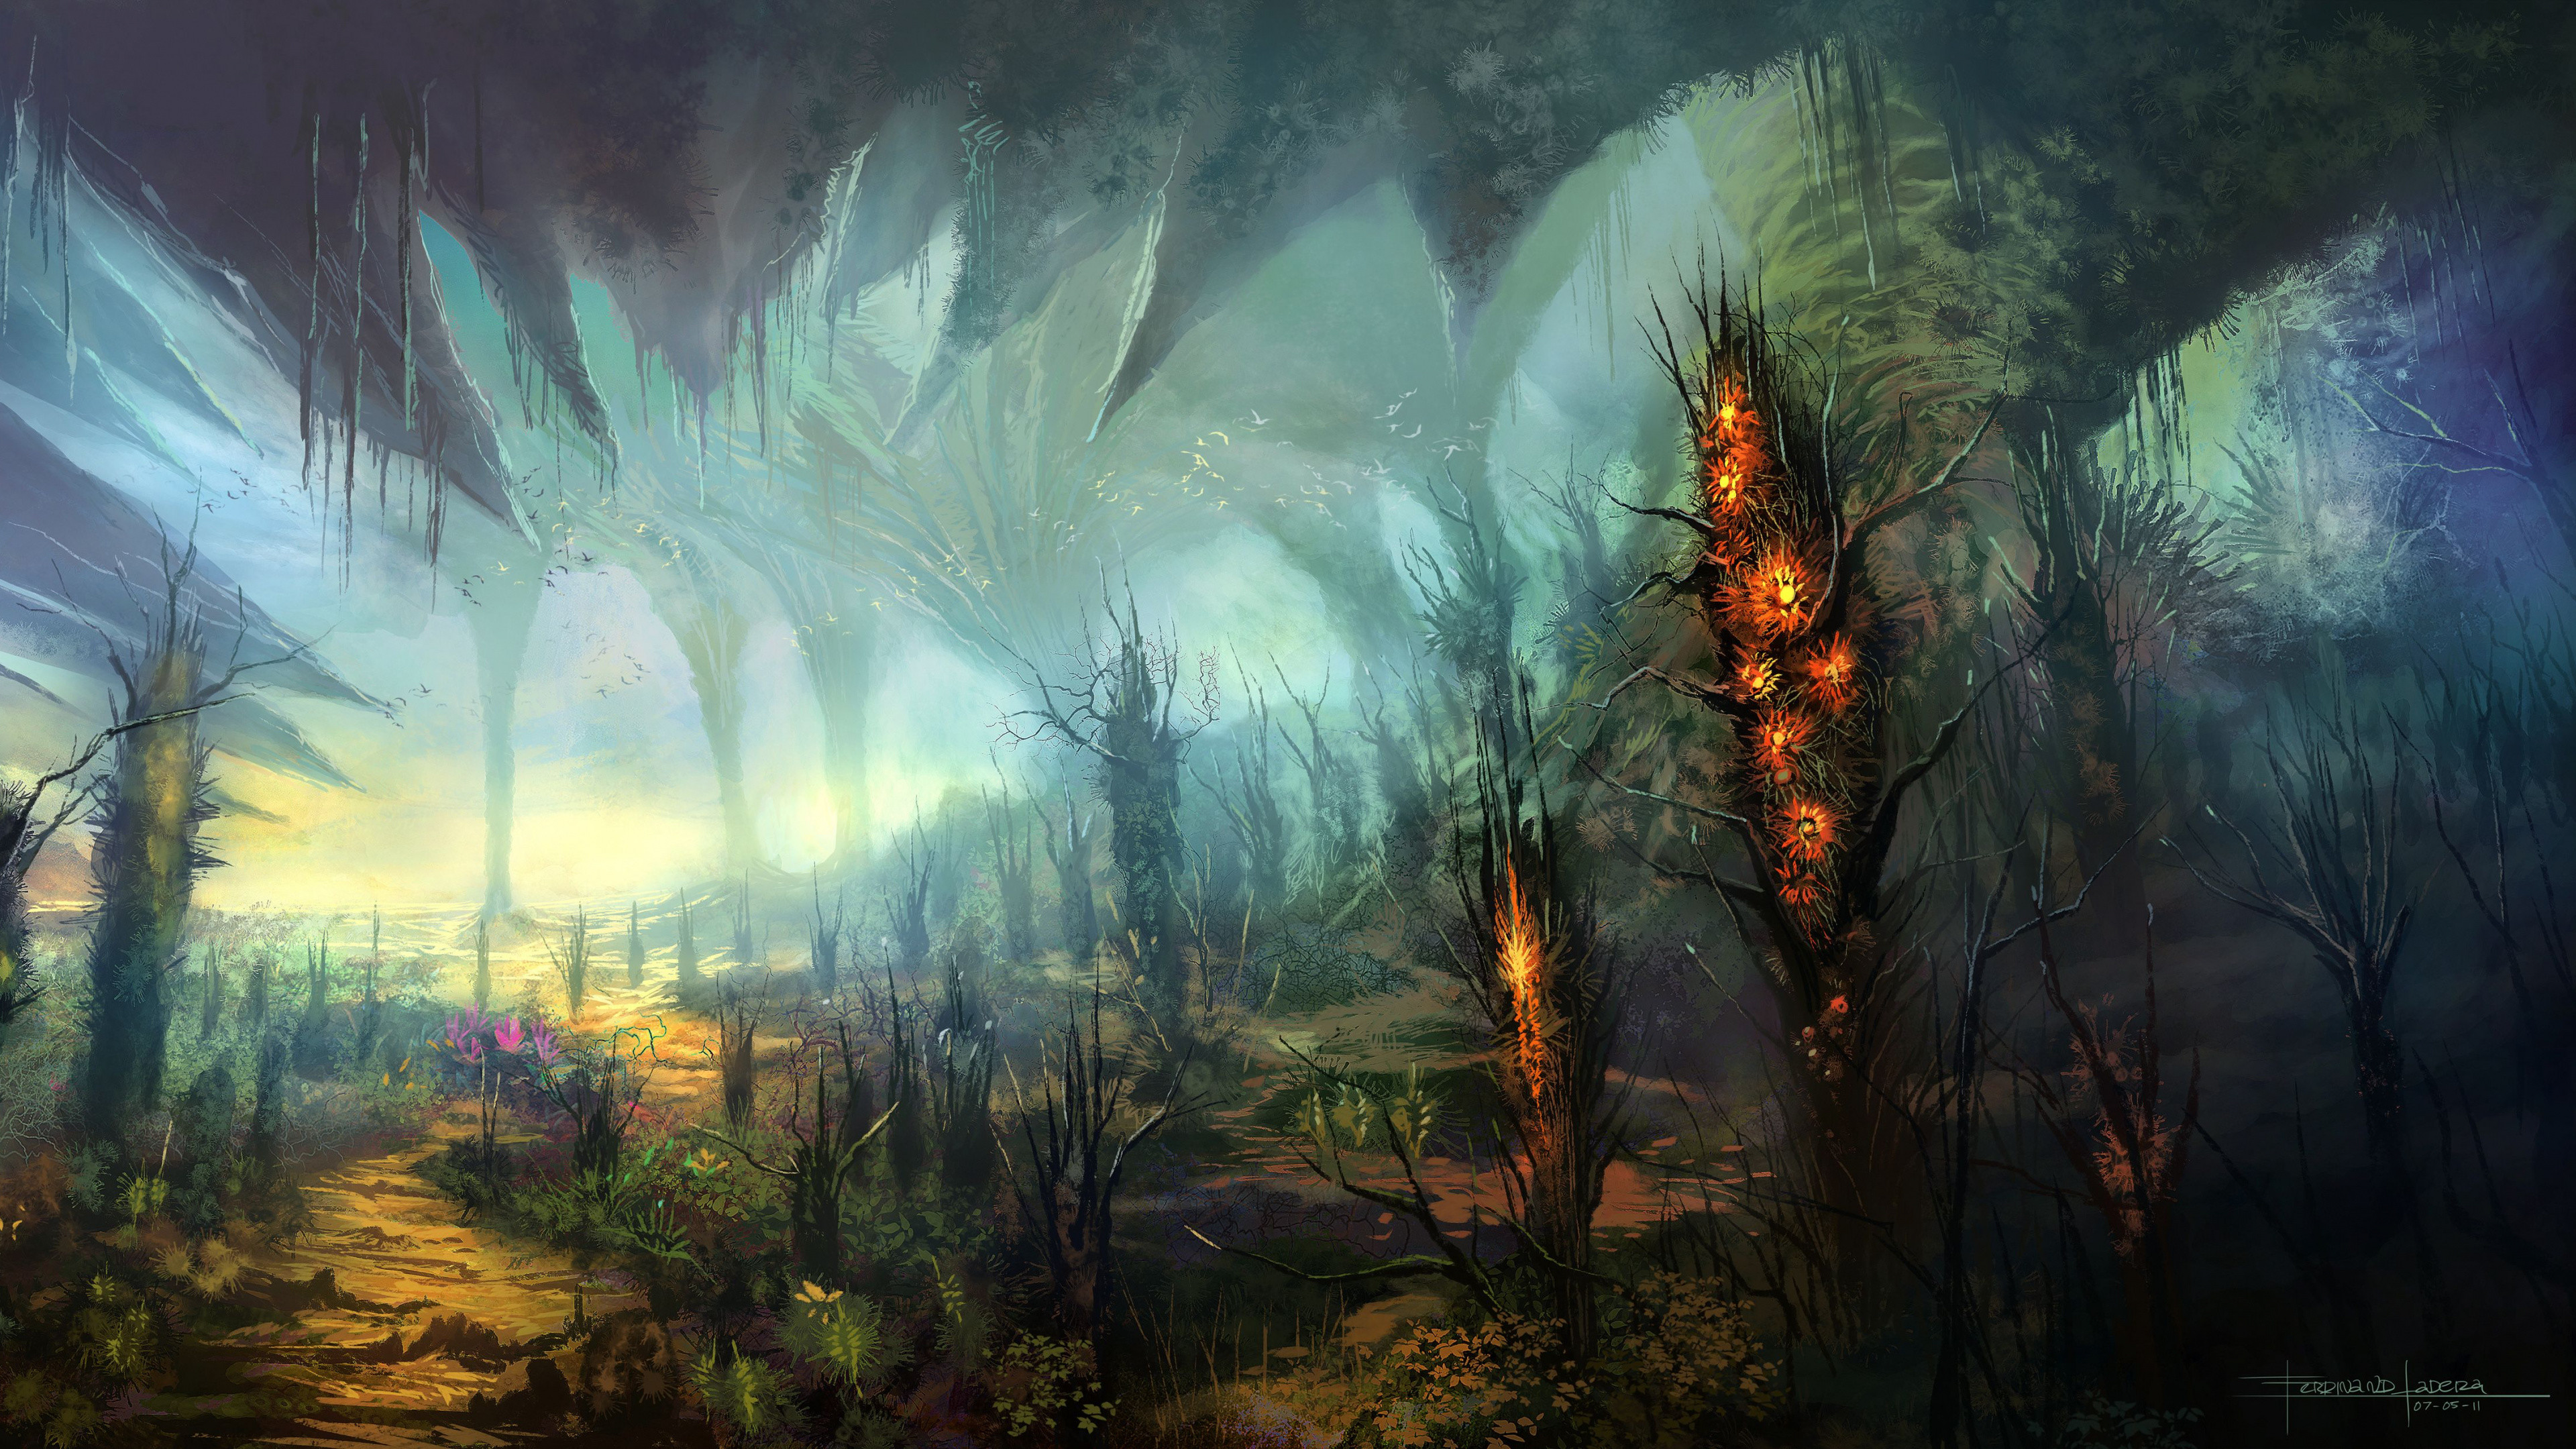 Res: 3840x2160, Science Fiction, World, Fantasy World, Atmosphere, Tree Wallpaper in   Resolution